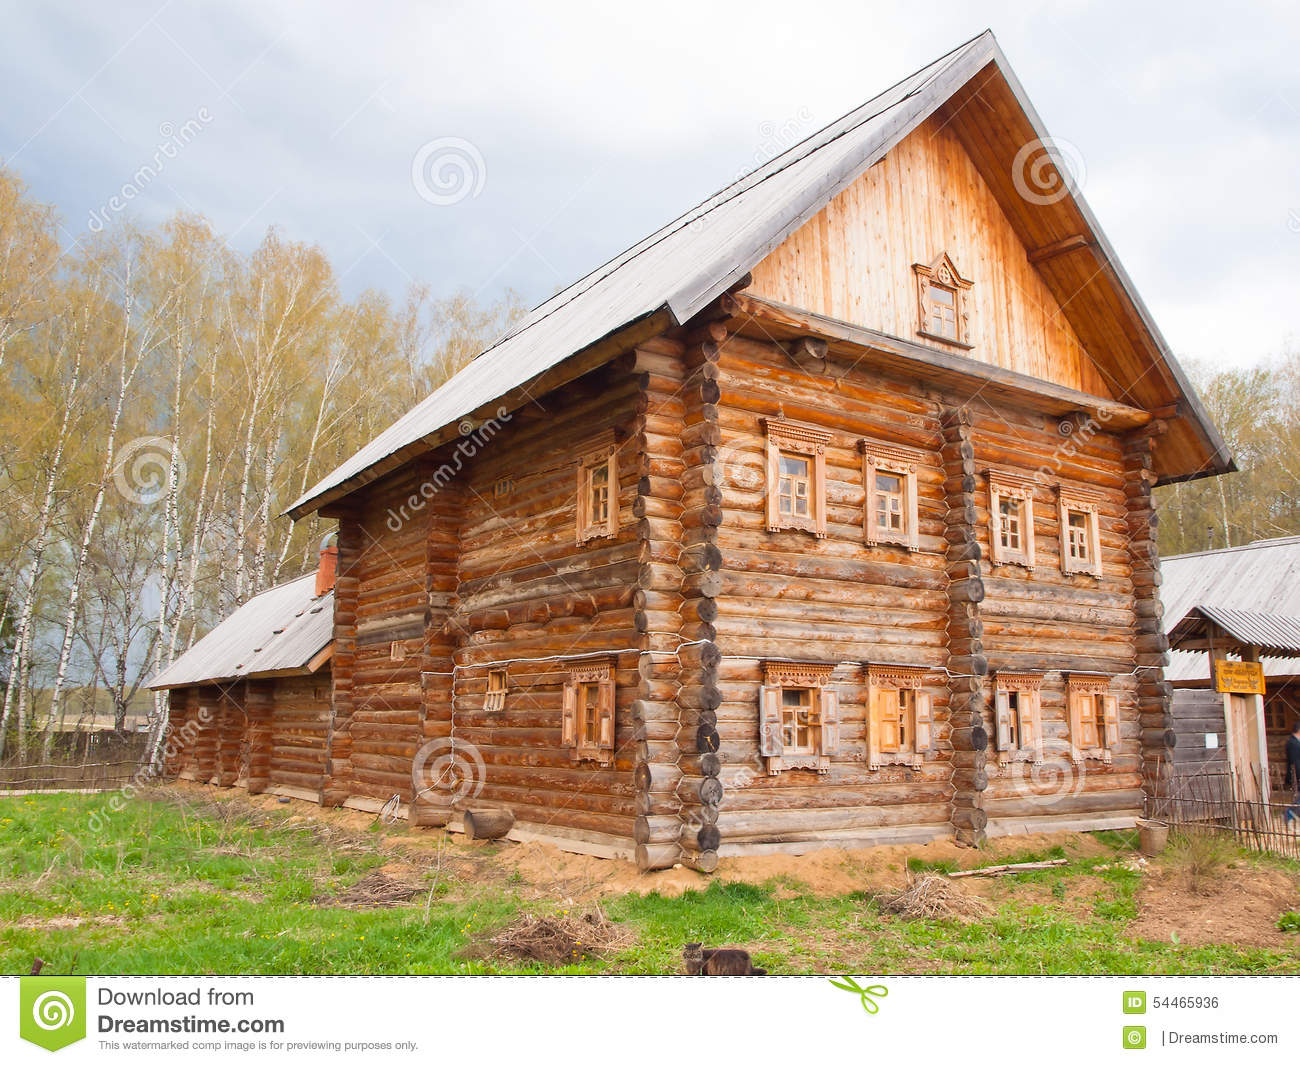 Old Swedish Farm House Interior Ricardmn Photography additionally Royalty Free Stock Photography Wall Raw Logs Texture Close Up Horizontal Traditional Country House Construction Wooden Architecture Image30899807 in addition Incredible Texas Farmhouse Mixes Modern Style Country Flair additionally I6s349 together with On The Hen House T S Carson. on wood country house plans